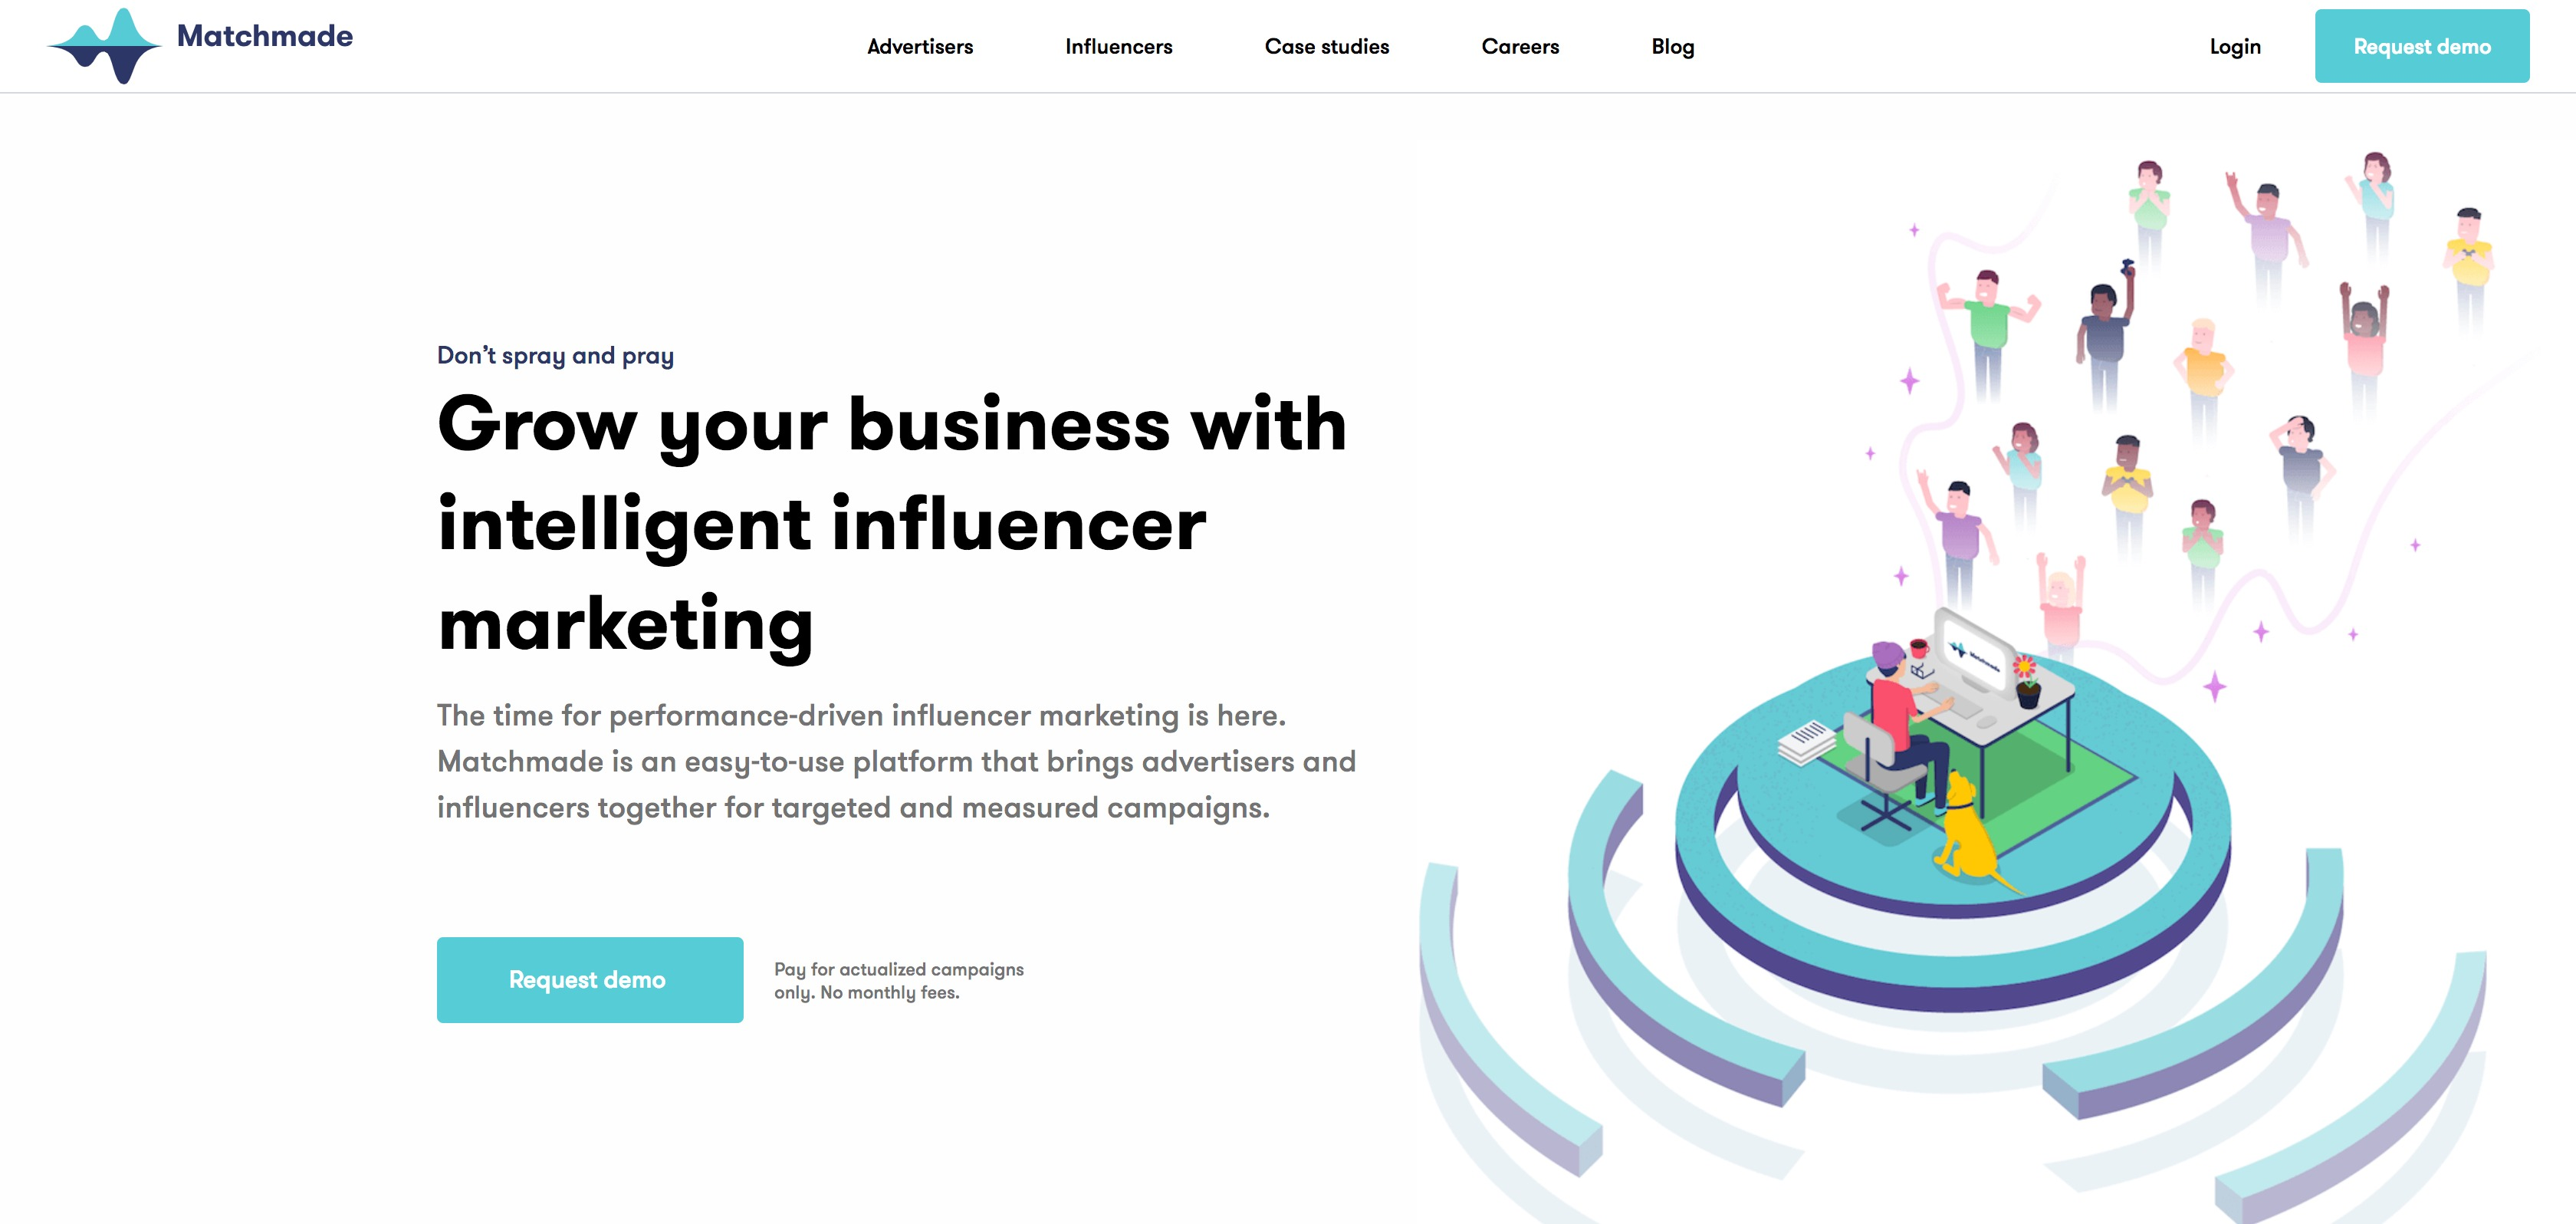 Top Influencer Marketing Platforms to Keep an Eye On in 2019